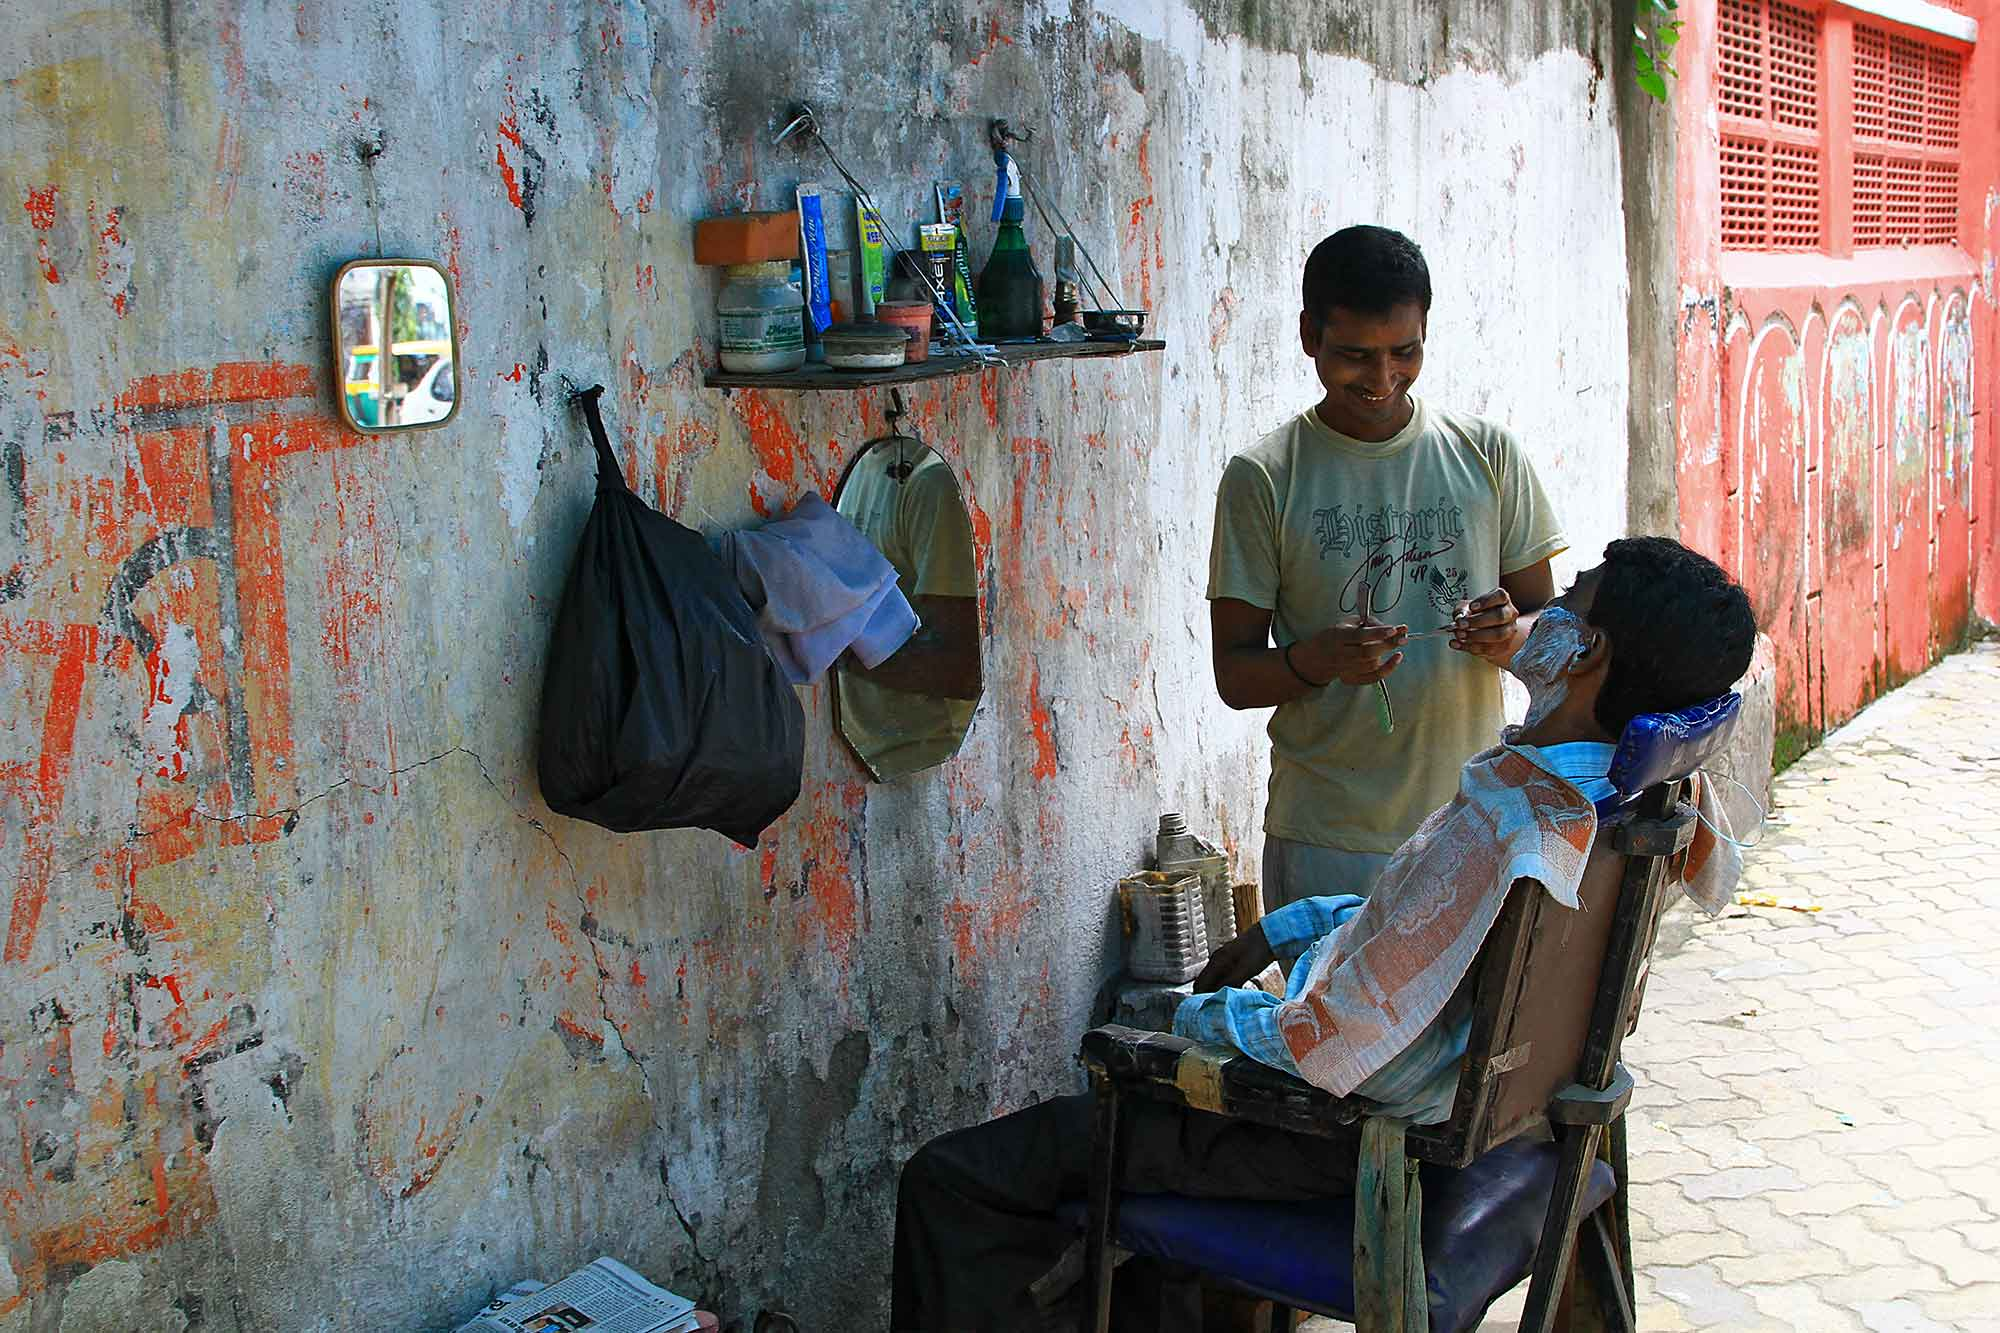 barber-shop-side-street-varanasi-india